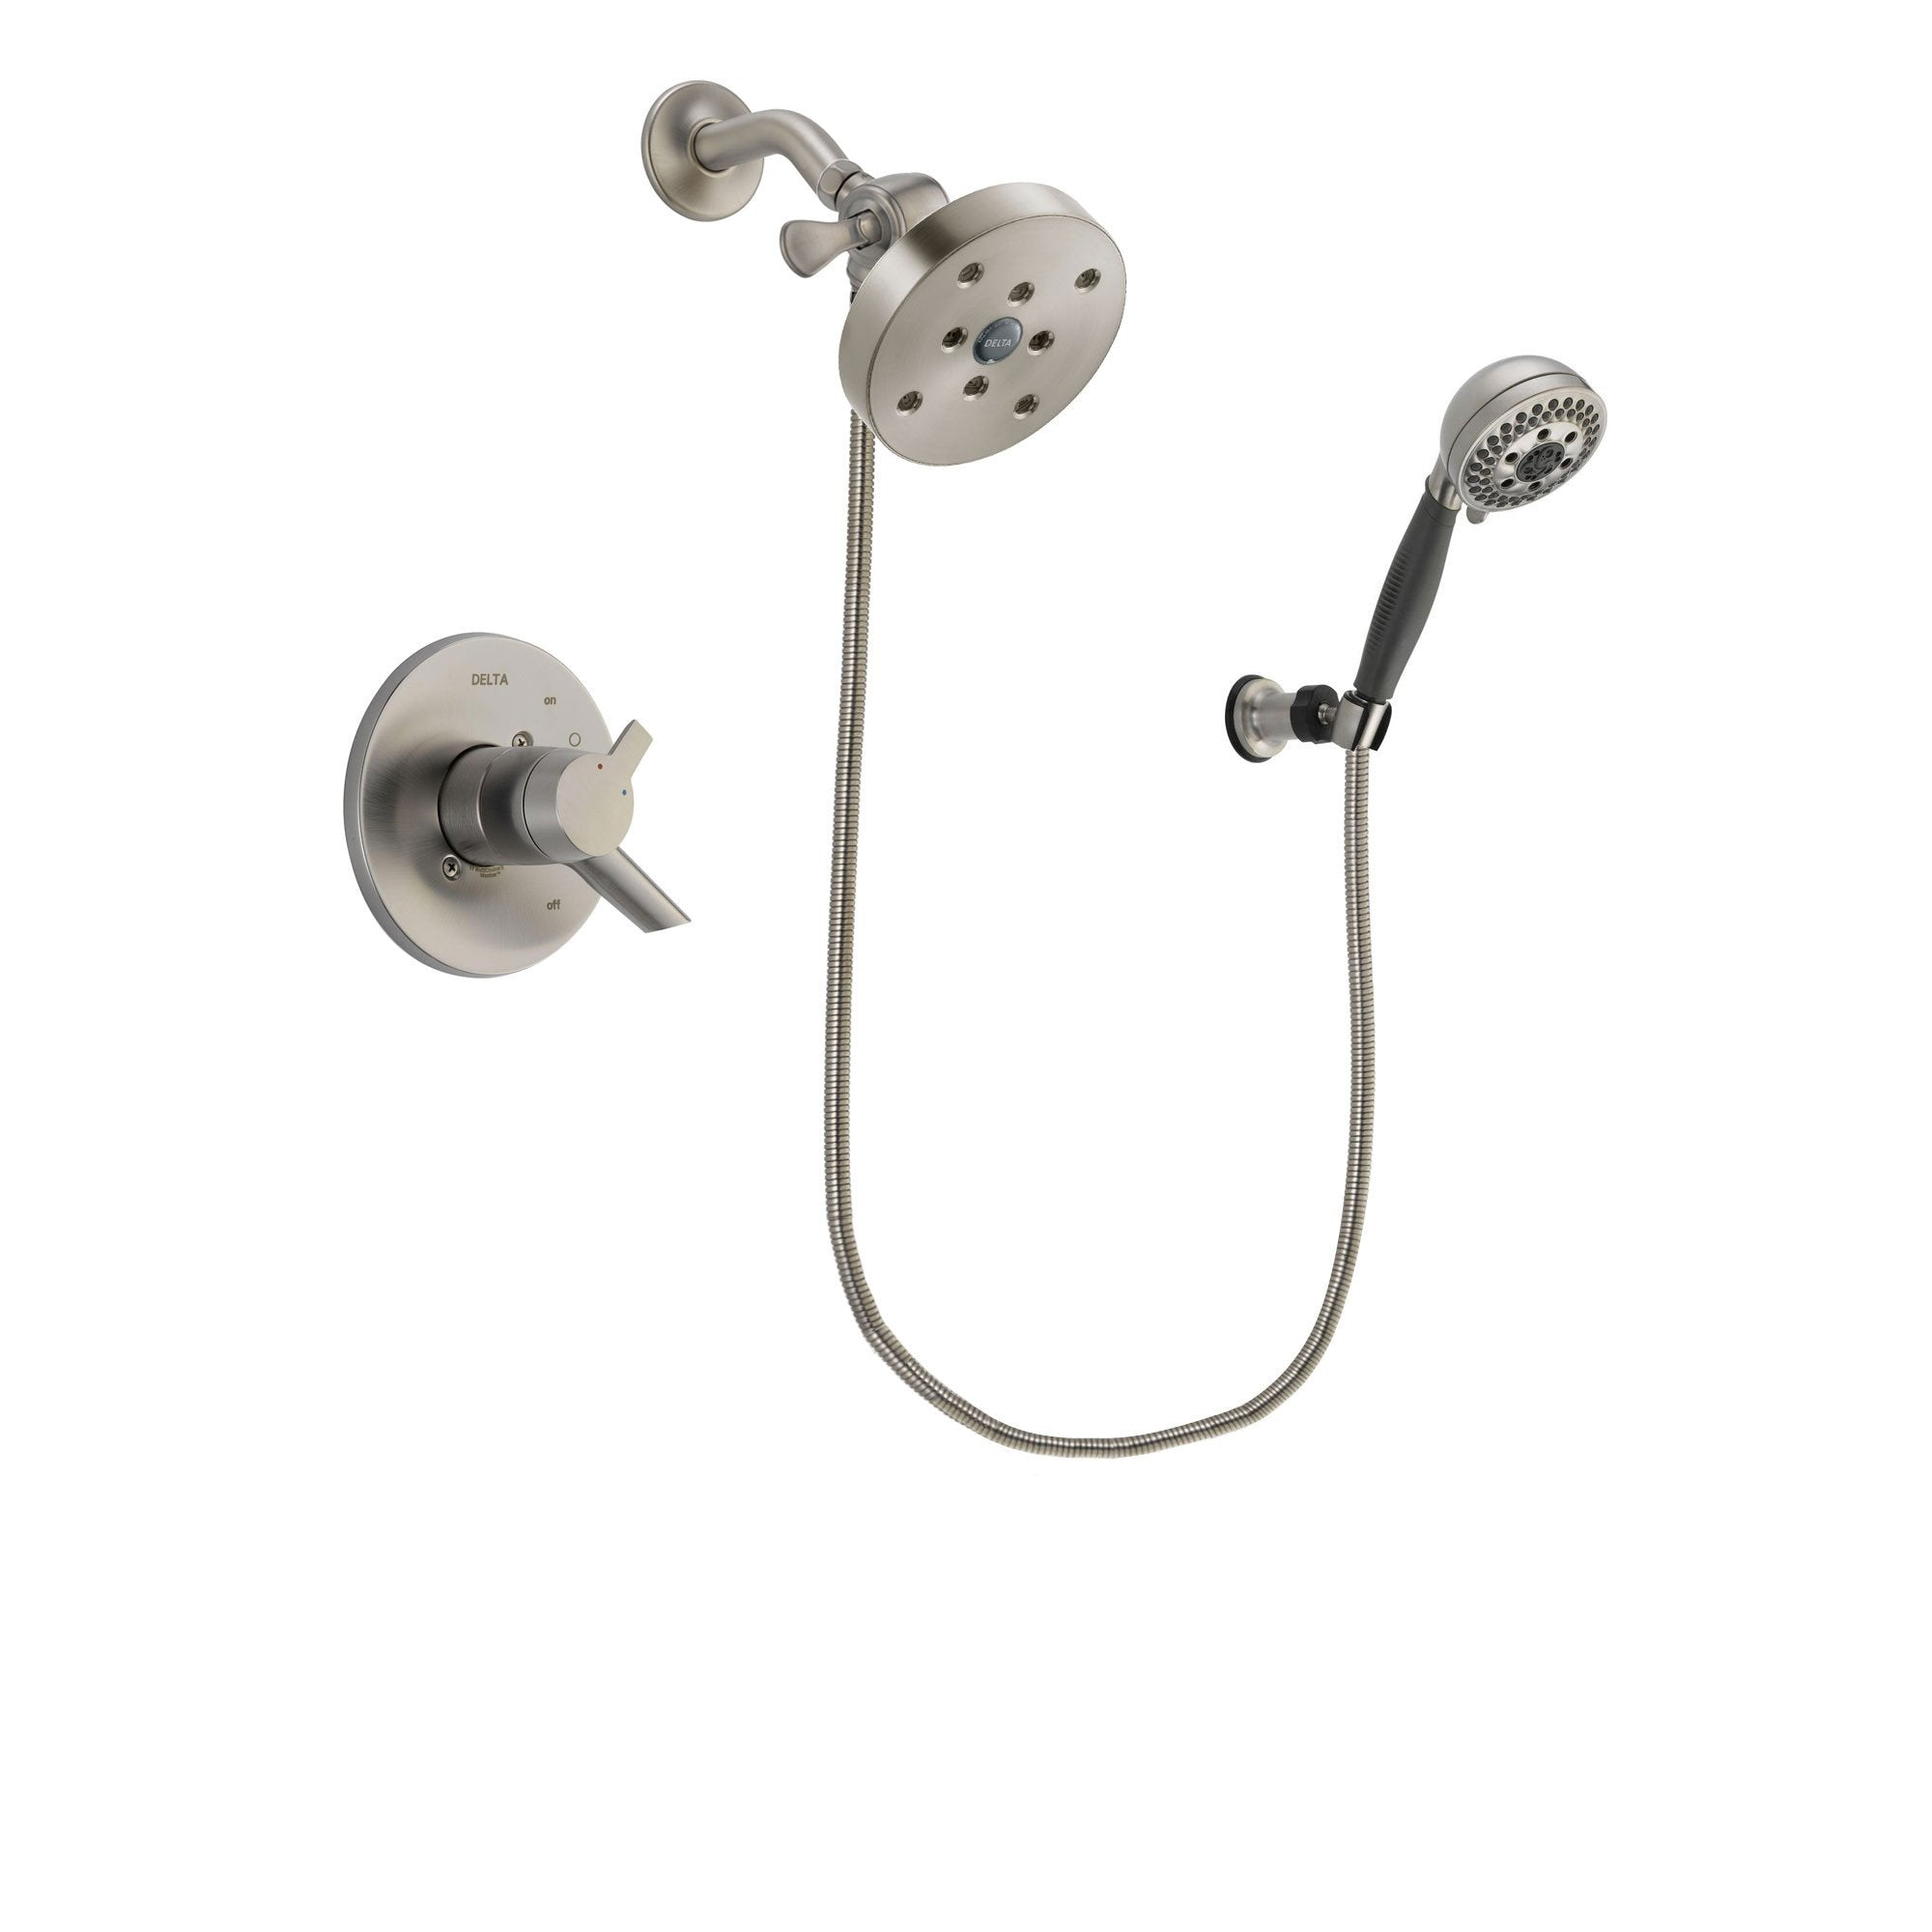 Delta Compel Stainless Steel Finish Shower Faucet System w/ Hand Spray DSP2048V